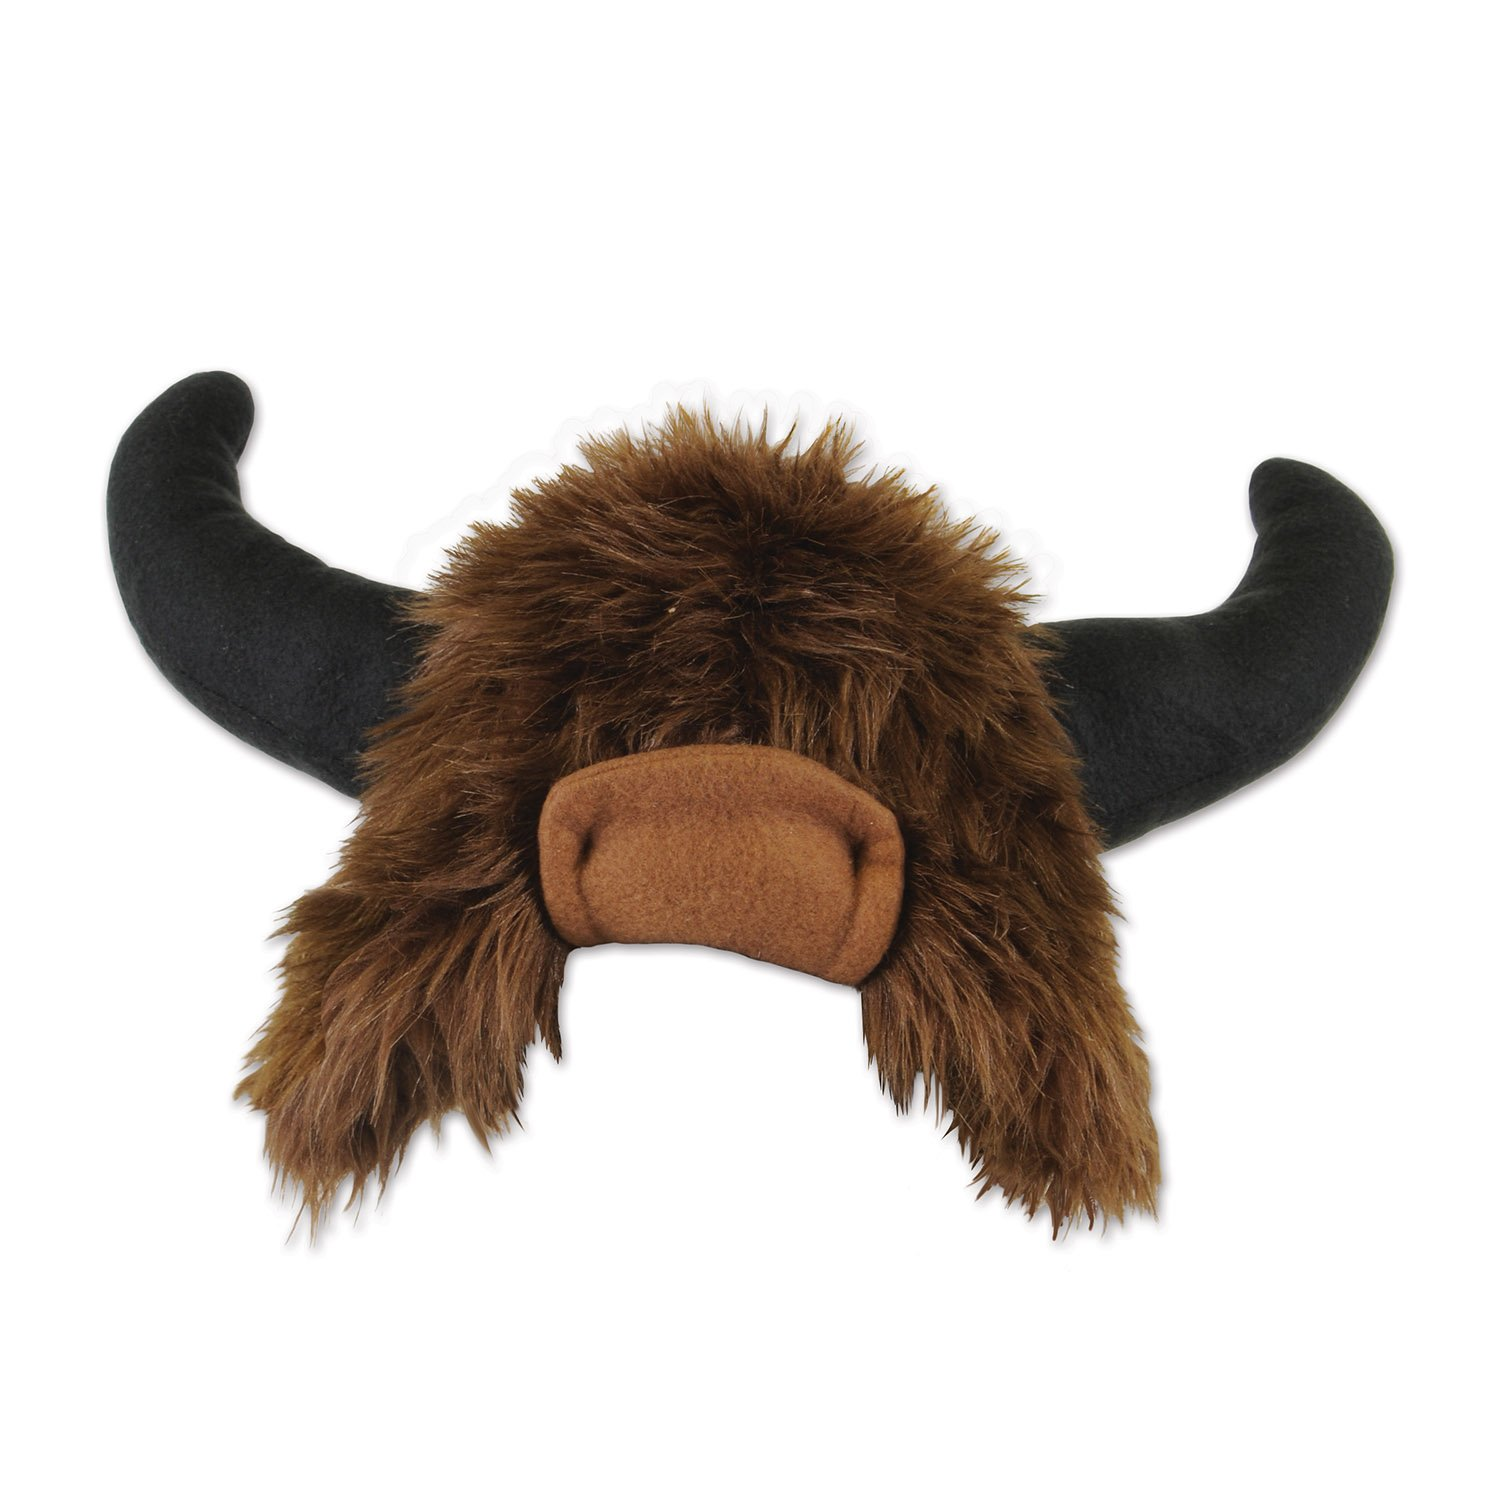 Beistle 60052 Plush Buffalo Hat, One Size, Brown/Black by Beistle